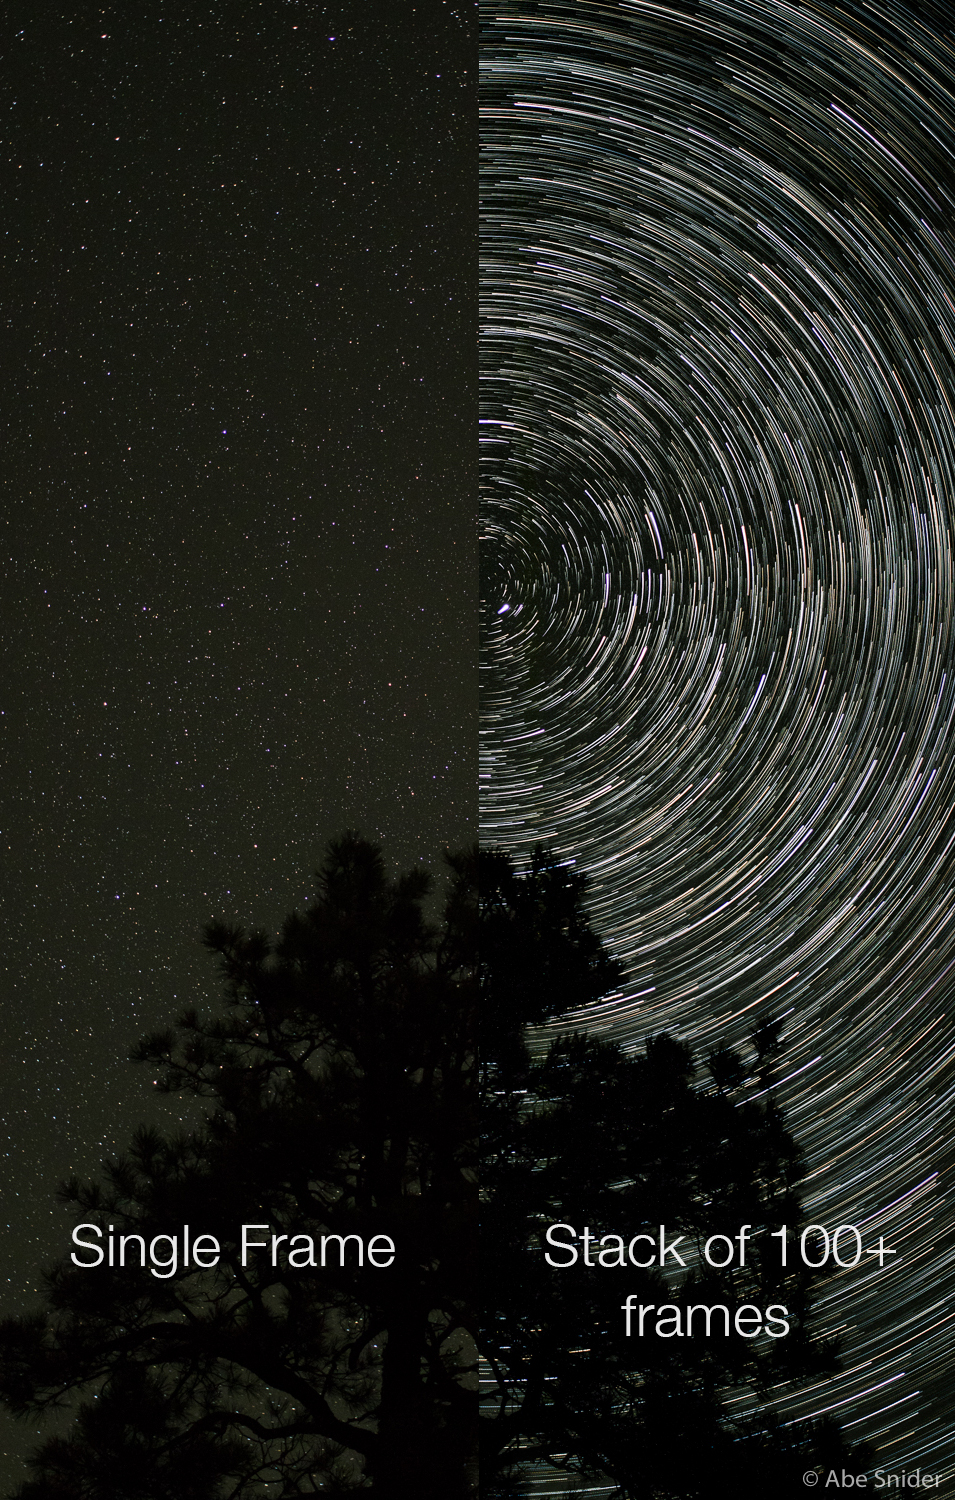 A single frame on the left, notice how only the stars at the edges seem to show the tiniest movement. On the right is the outcome of stacking many images together.  The images that make up this stack were taken at: 40mm, f2.8, ISO800 and 30 seconds.